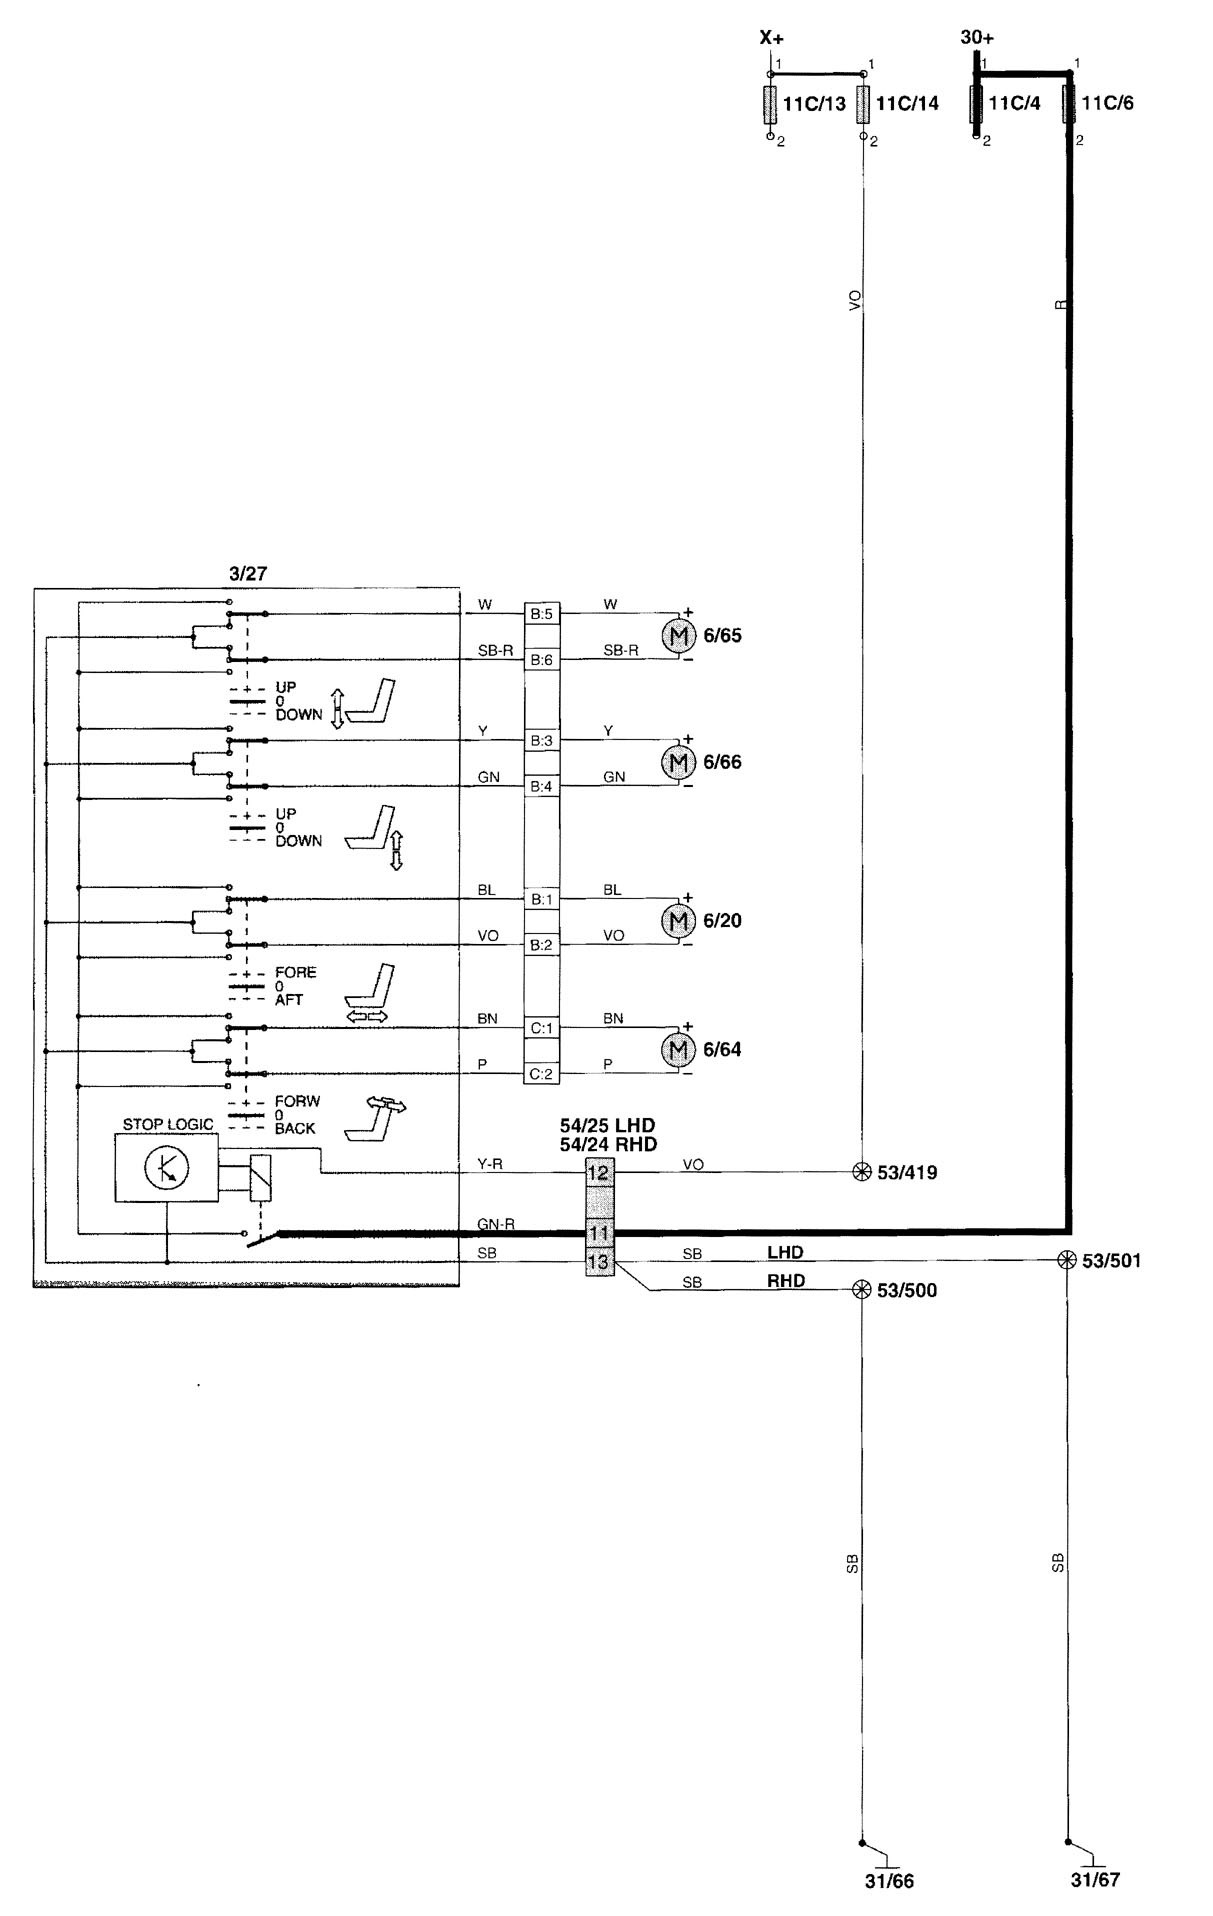 Volvo excavator wiring diagrams jeep liberty rear harness